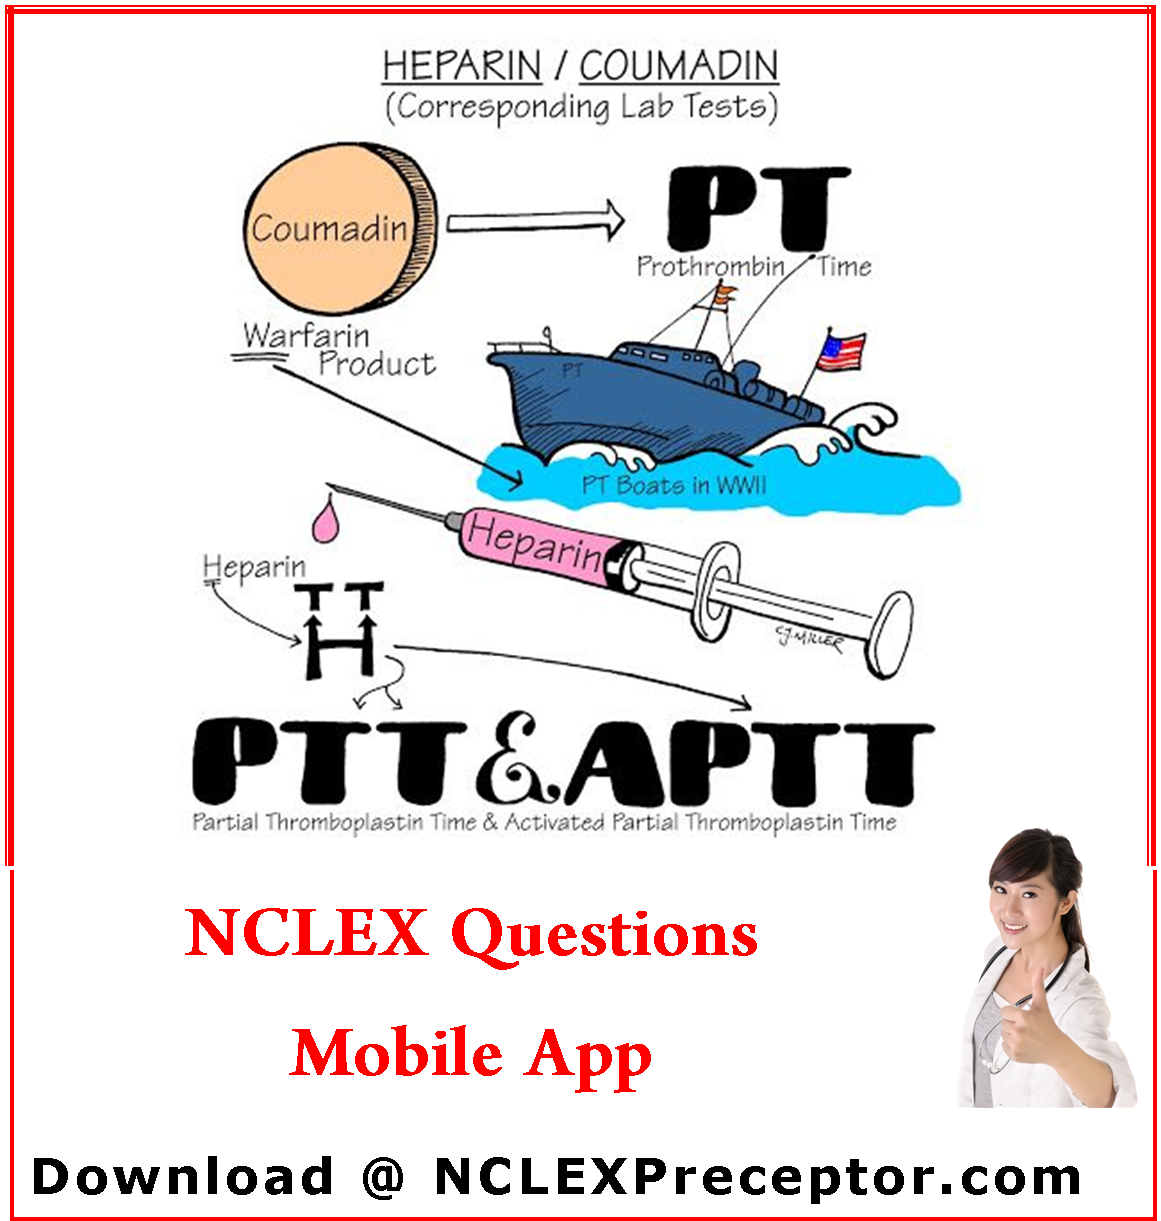 Nclex Questions And Test Prep Mobile App To Help Rn Pass Nclex Exam Free Download Nclex Tips